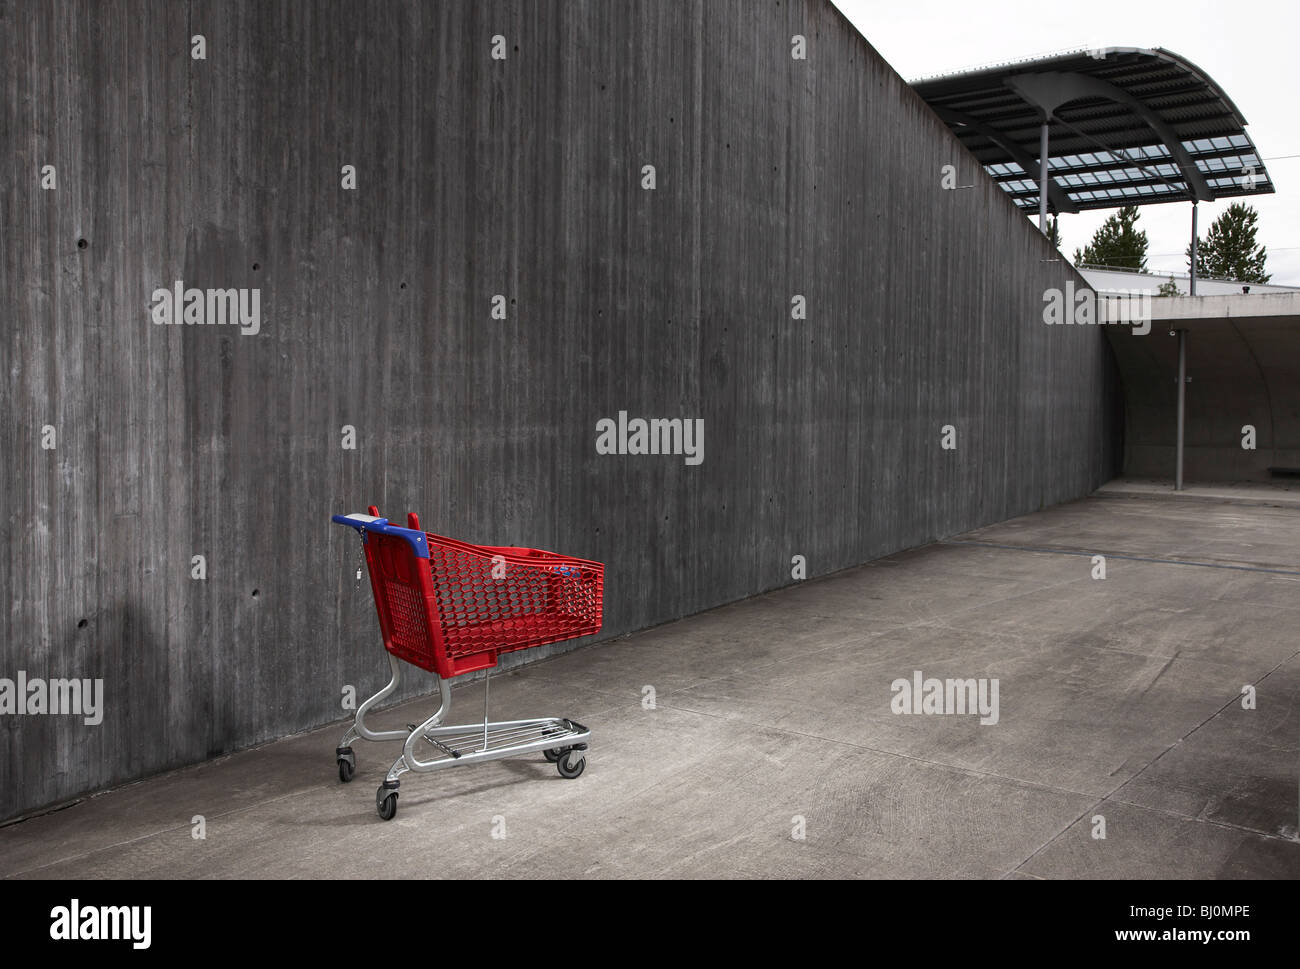 red shopping trolley in front of concrete wall - Stock Image